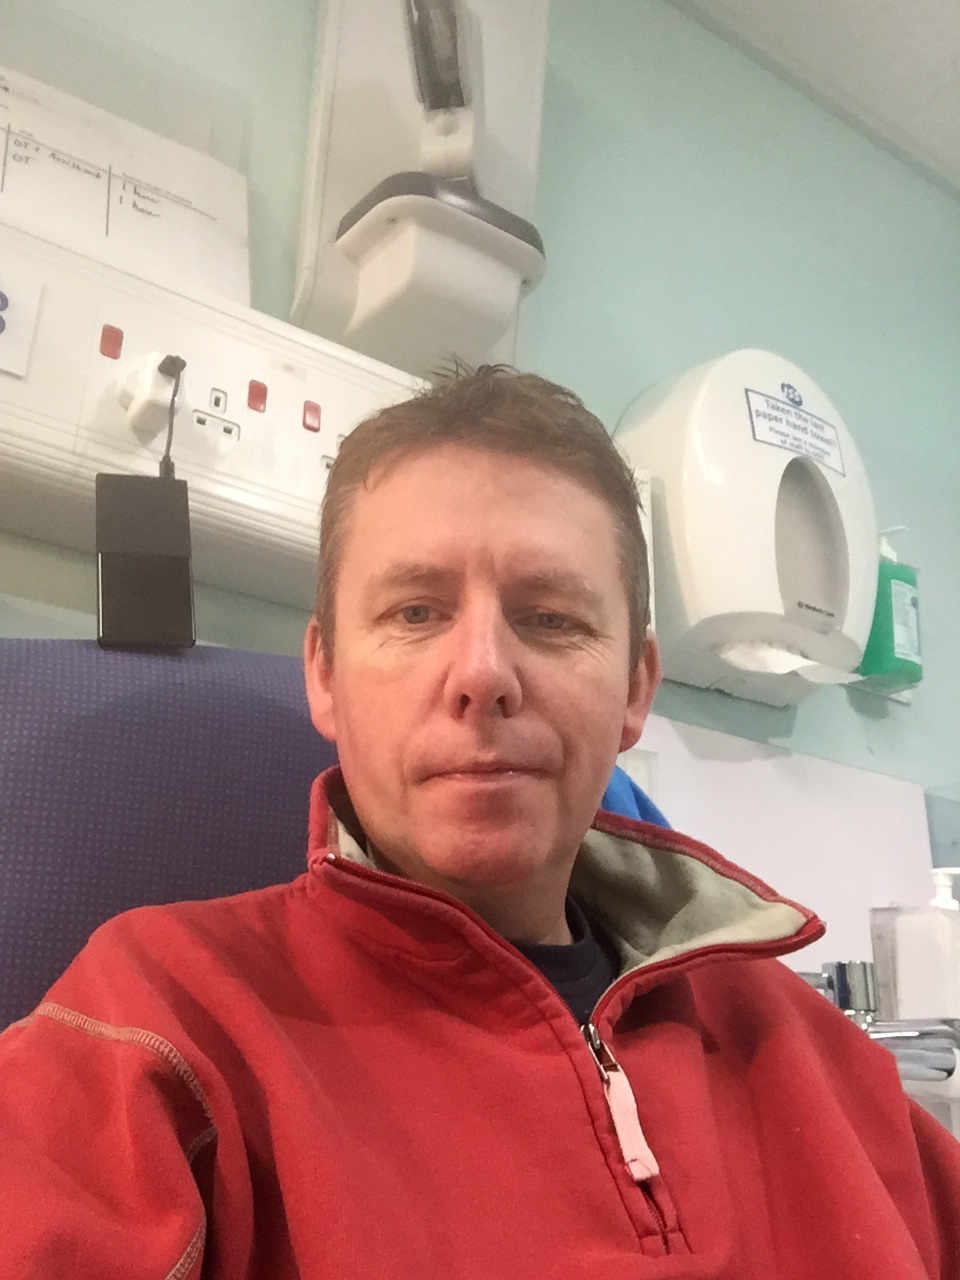 Rod Maxwell during his stay at Salford Royal Hospital